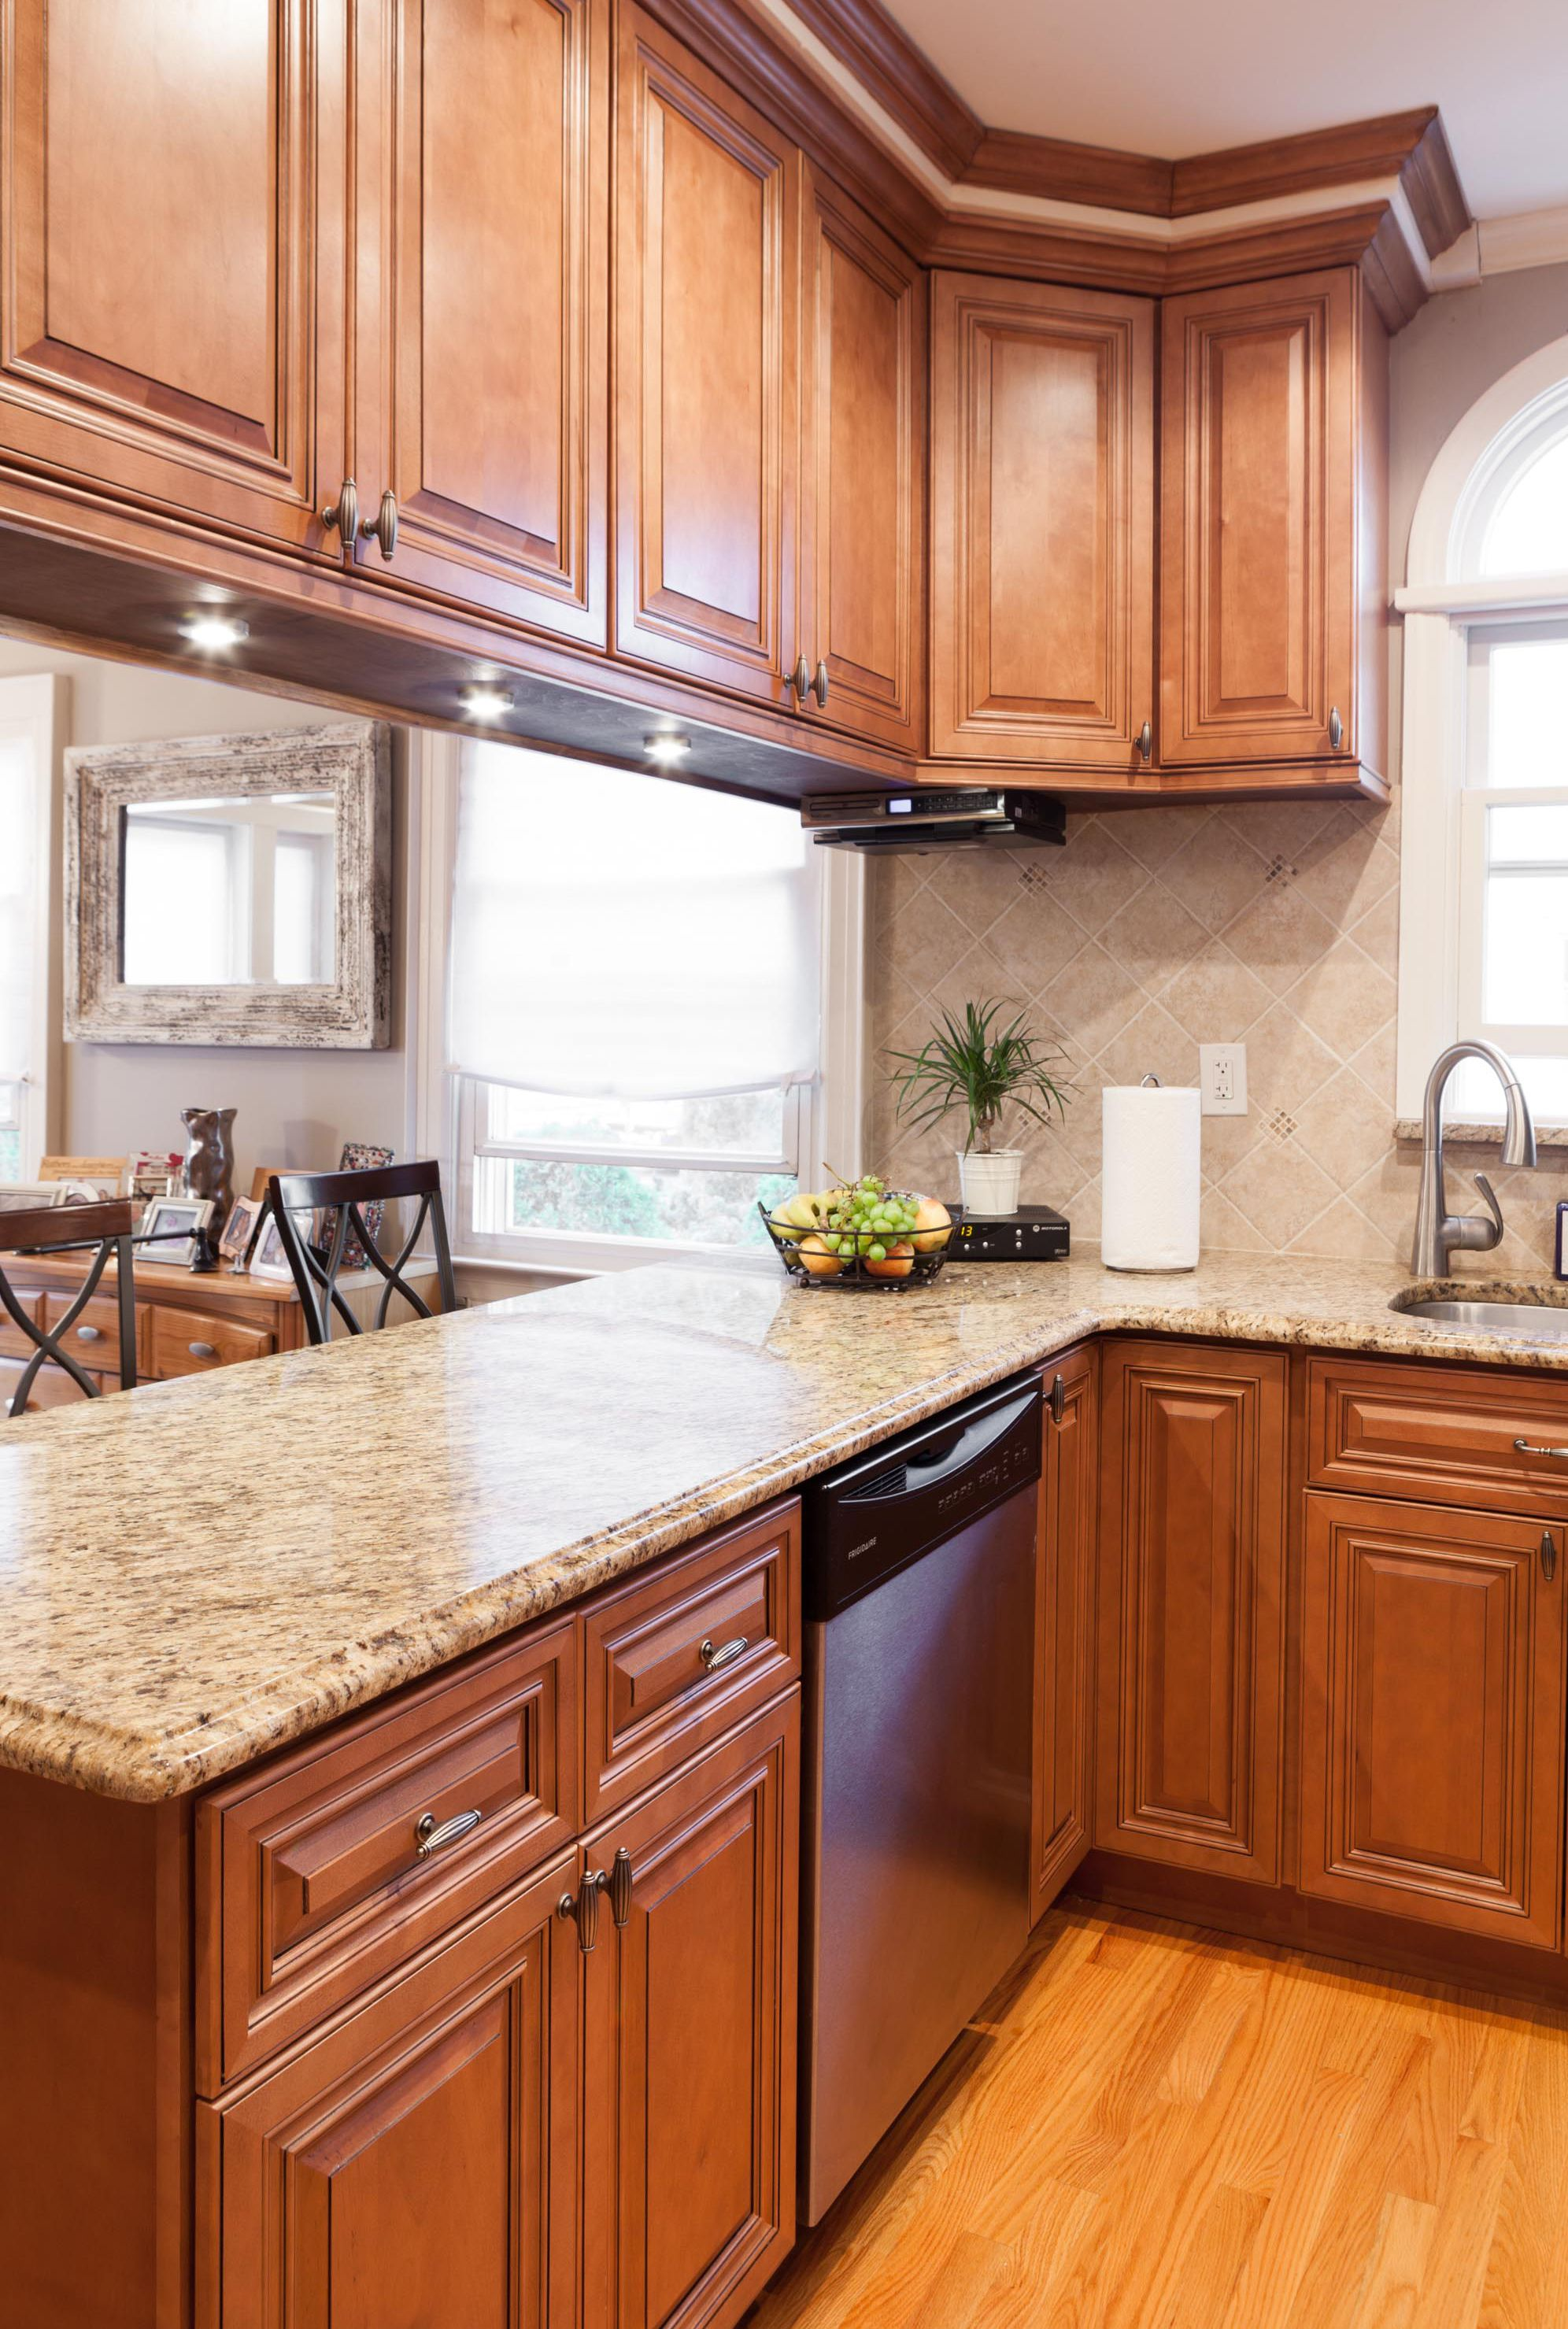 J&K Traditional maple wood cabinets in Cinnamon Glaze ... on What Color Granite Goes With Maple Cabinets  id=86142